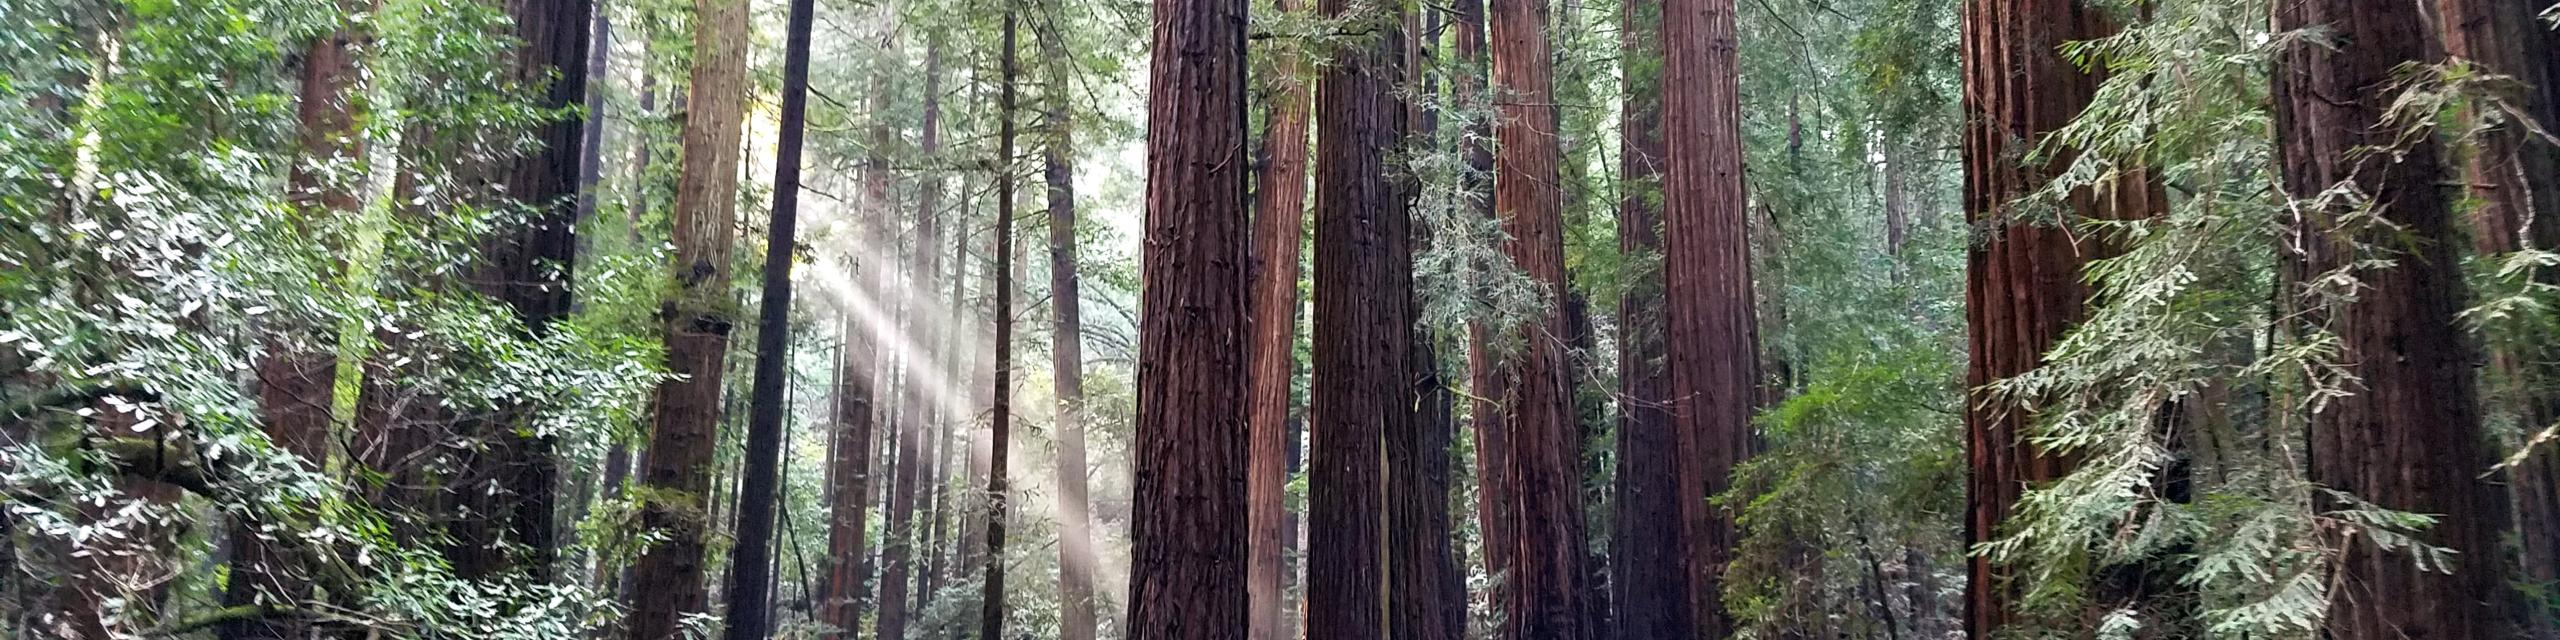 Redwood Trees of Northern California